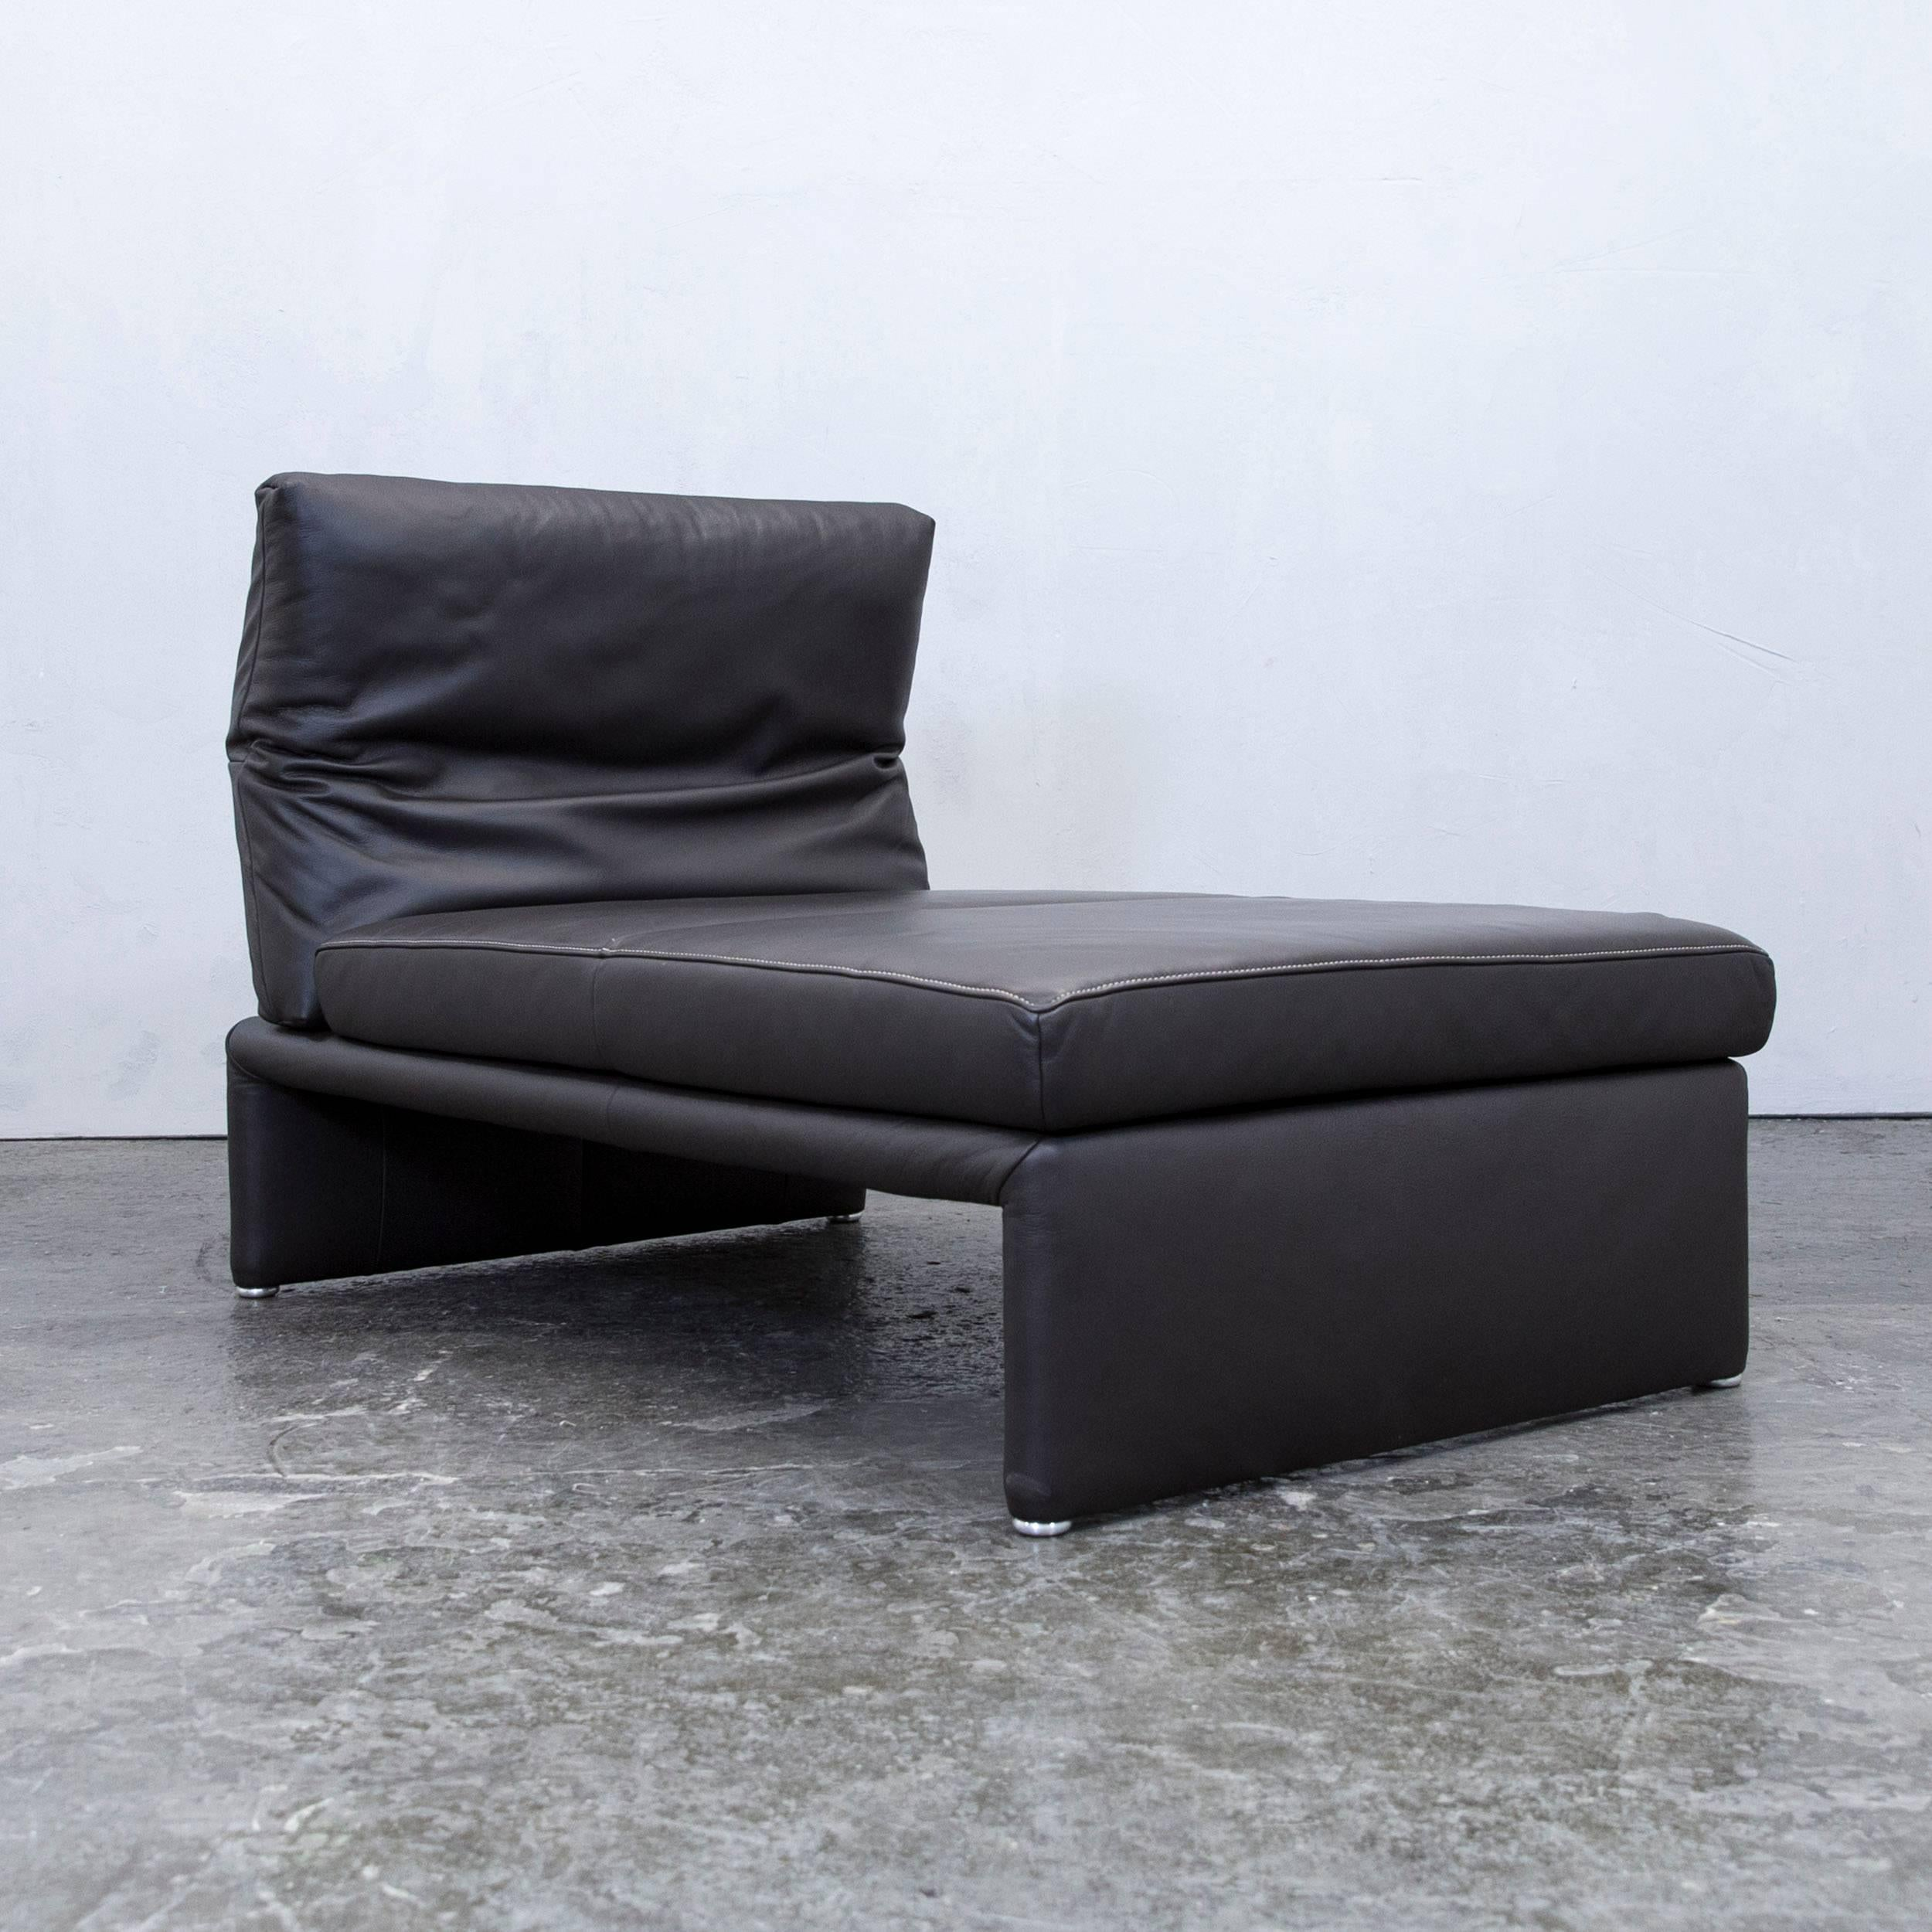 Recamiere Modern koinor designer chaiselongue leather mocca brown recamiere function